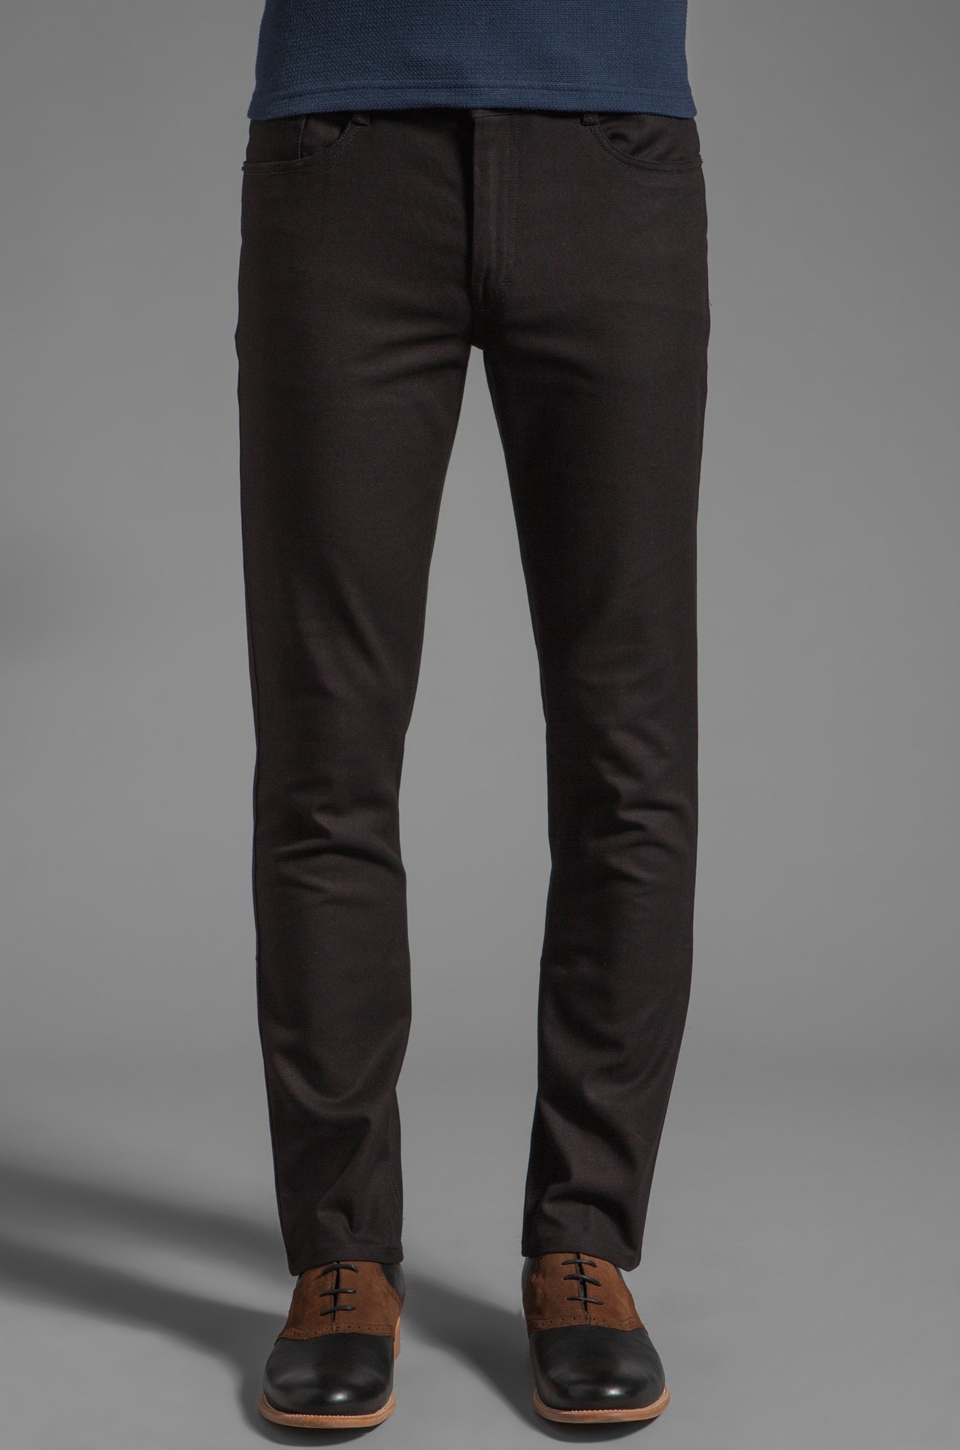 FARAH VINTAGE The Mills Slim Fit Hopsack Jean in Black